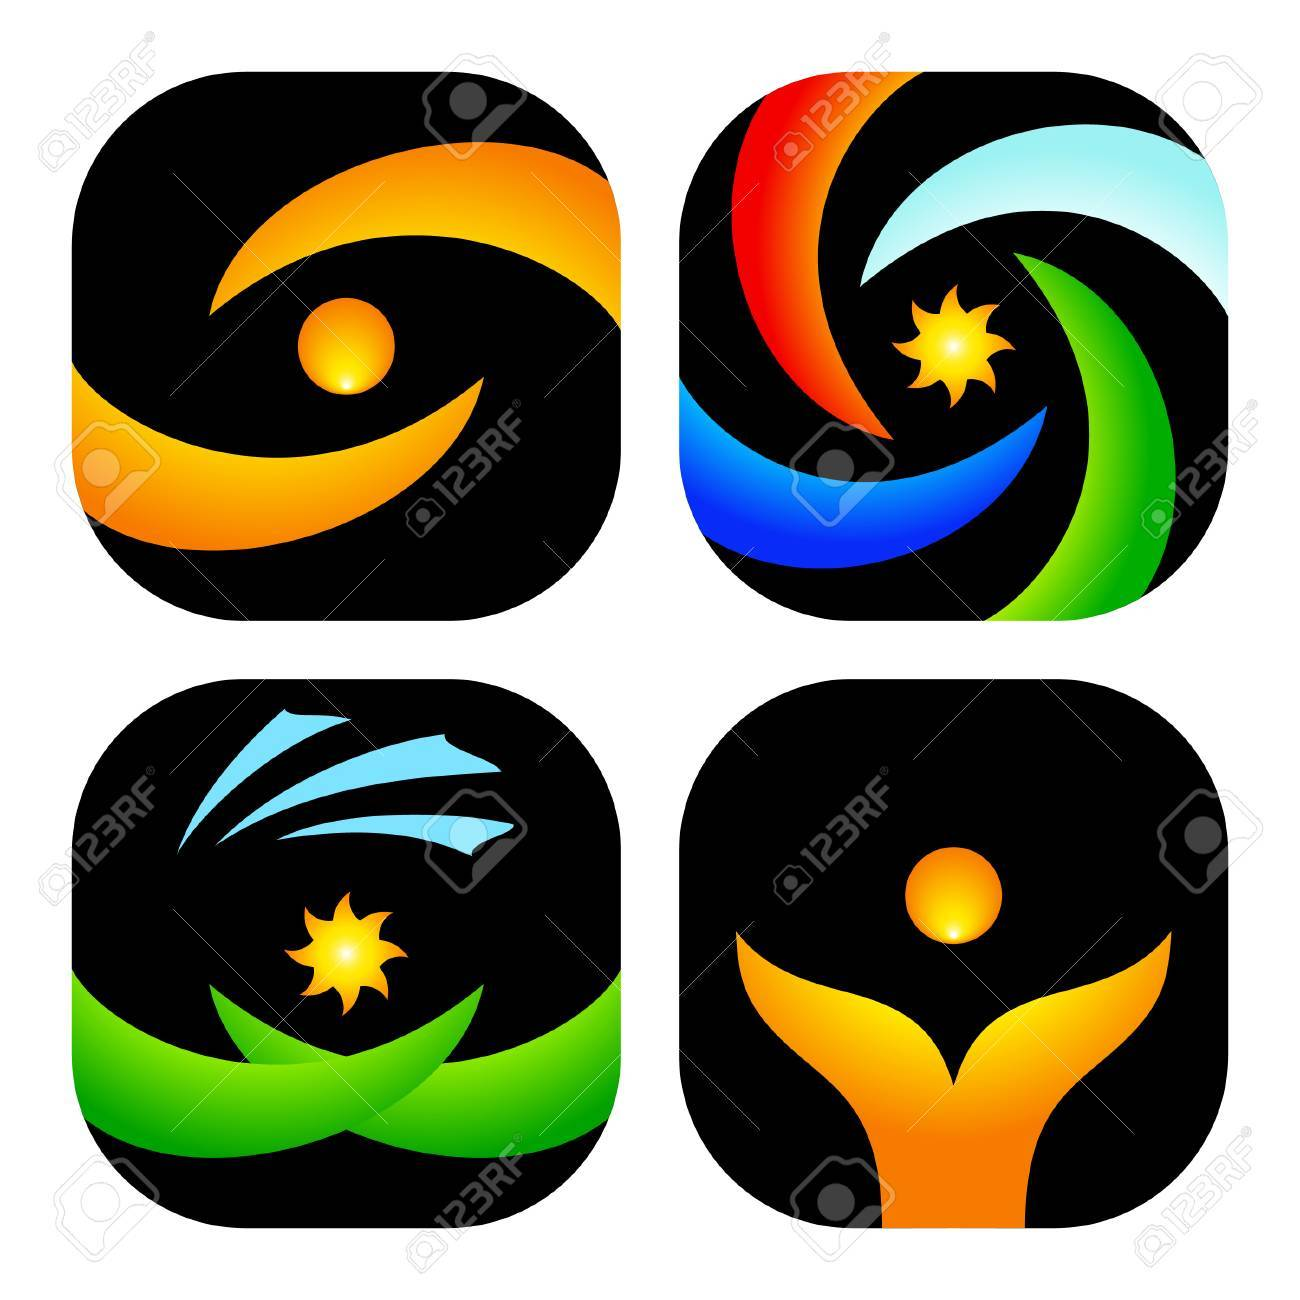 Abstract icons or logos Stock Vector - 5344708